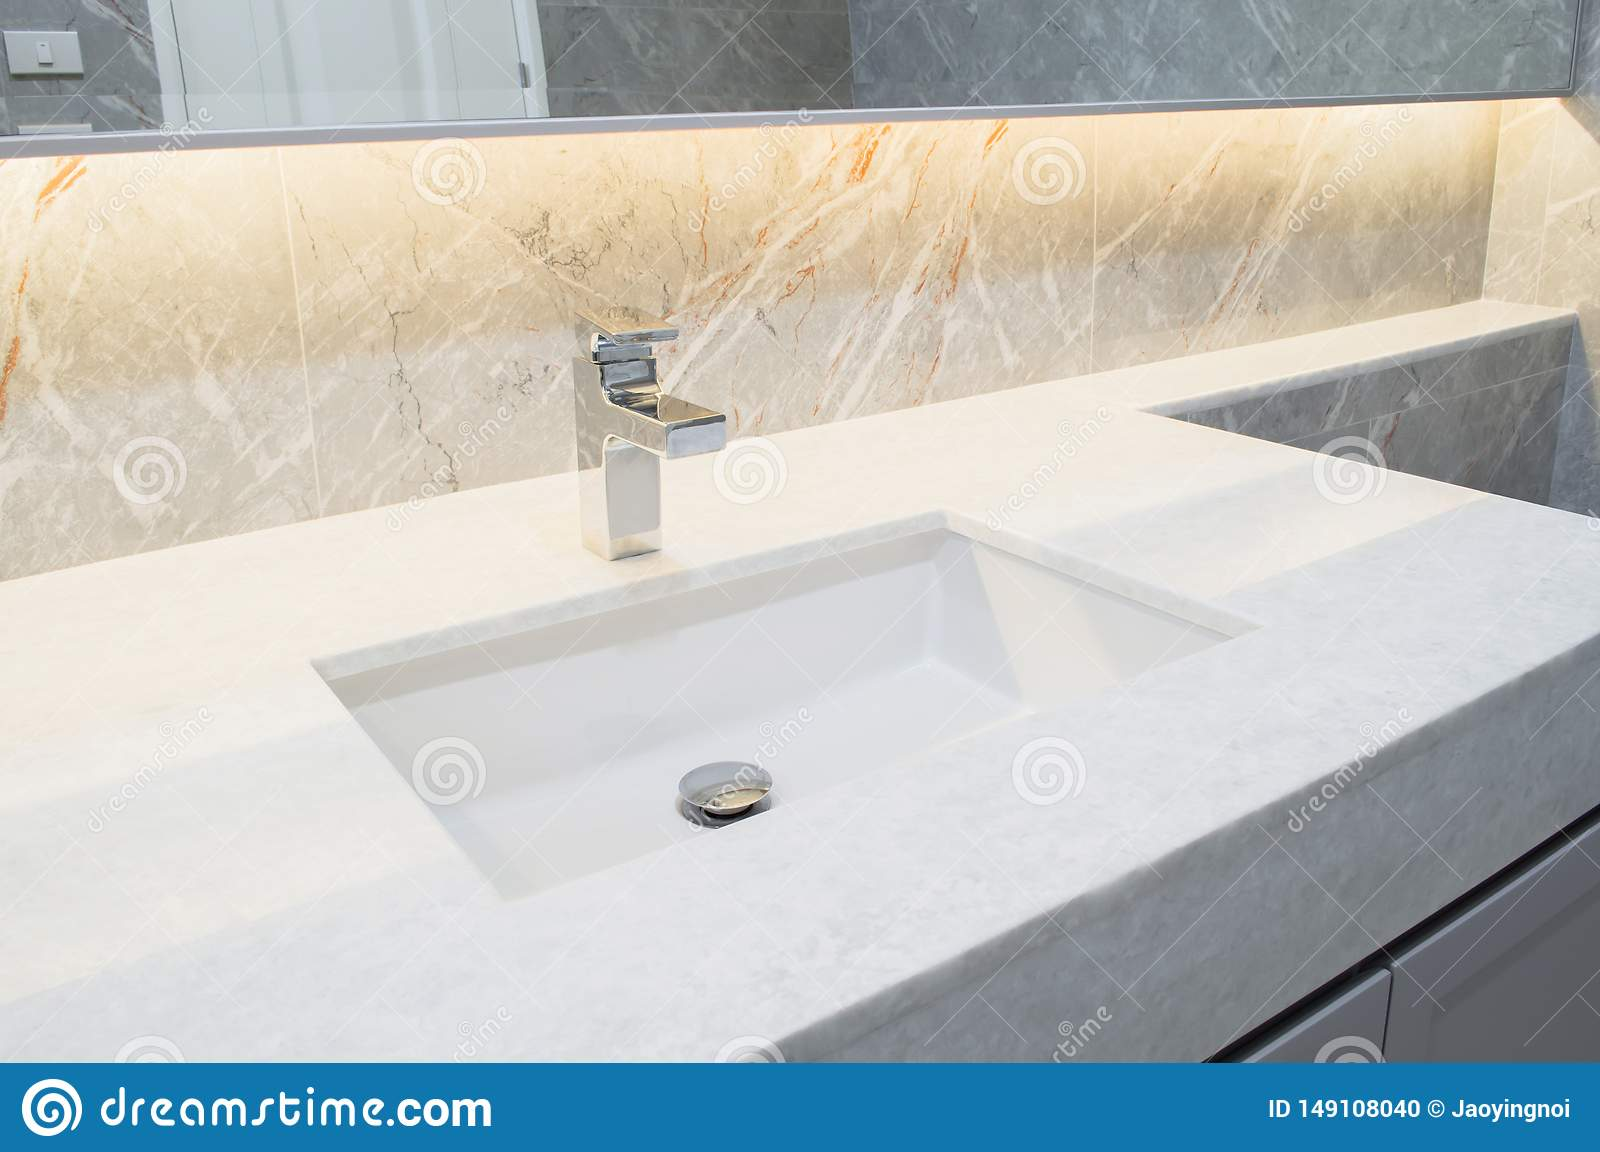 Counter Top White Marble With Washbasin Wall And Floor Beige Grey Marble Stone Interior Design Of Restroom Or Toilet Background Re Stock Photo Image Of Frame Clean 149108040